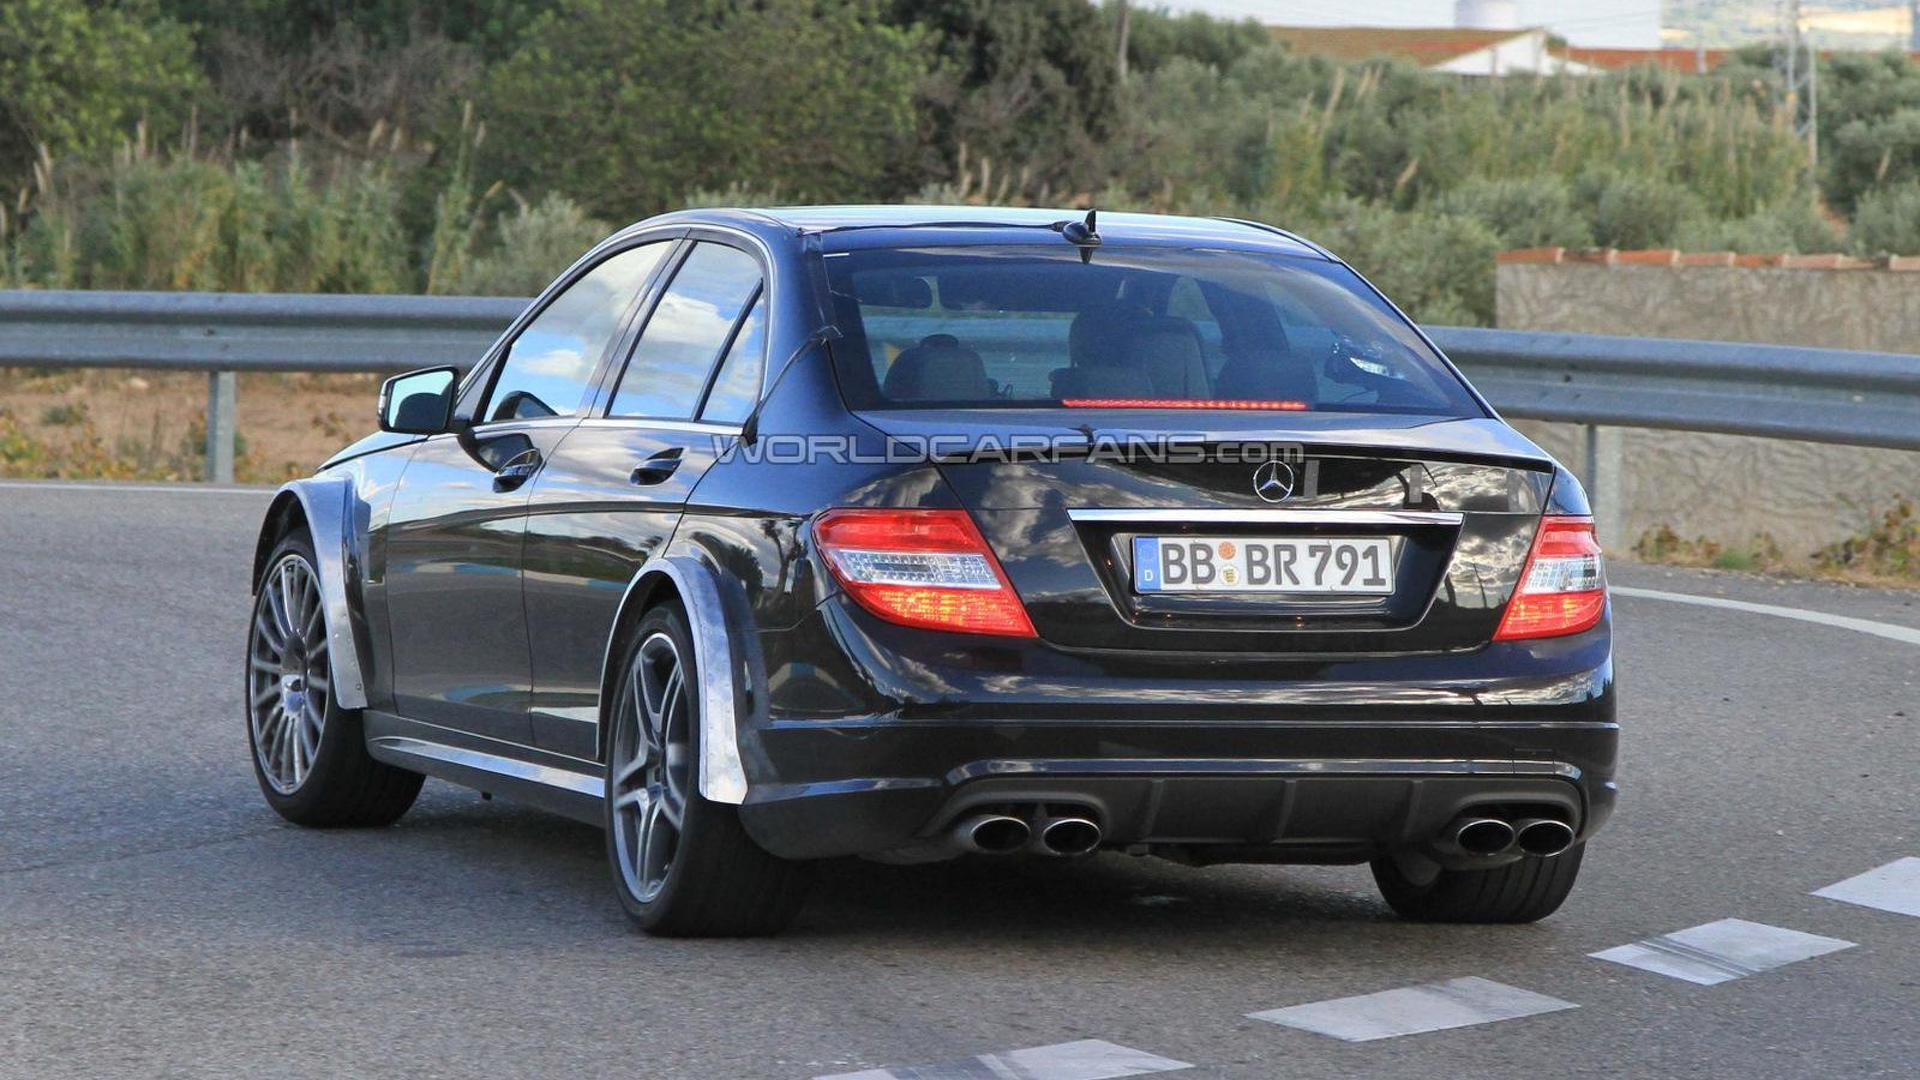 2012 C63 Amg For Sale >> 2012 Mercedes C-Class Black Series spied